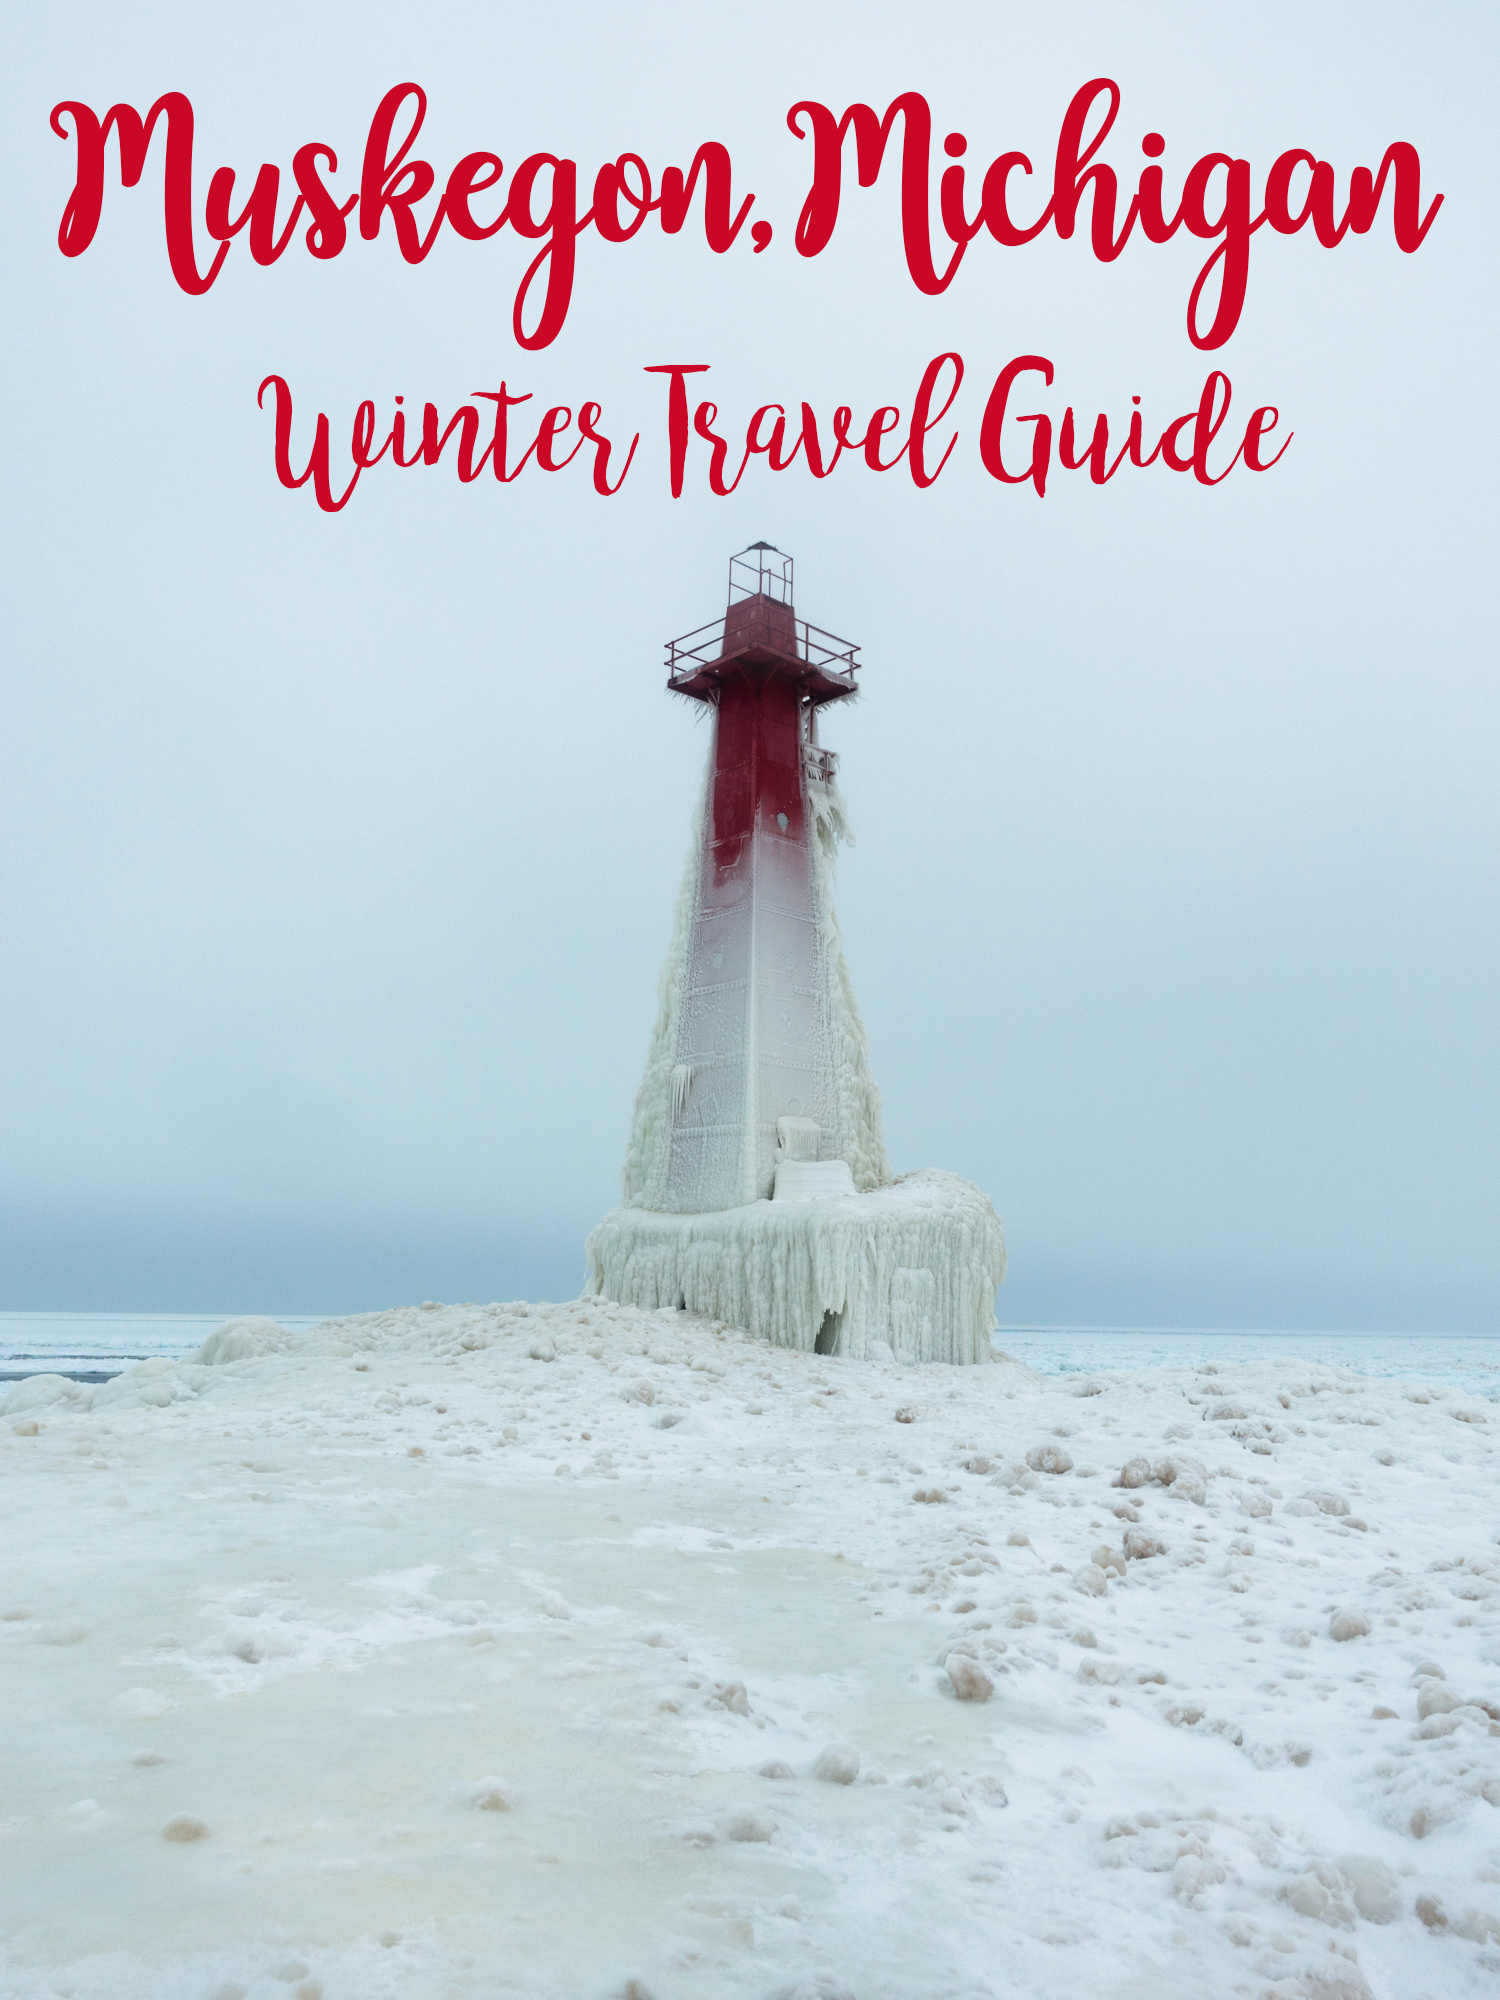 Muskegon, Michigan Winter Getaway: What to See, Do and Eat: a travel guide on what to see, do and eat in Muskegon, Michigan during the winter. #winter #travel #Midwest #michigan #adventure #hiking #vegan #food #travelguide